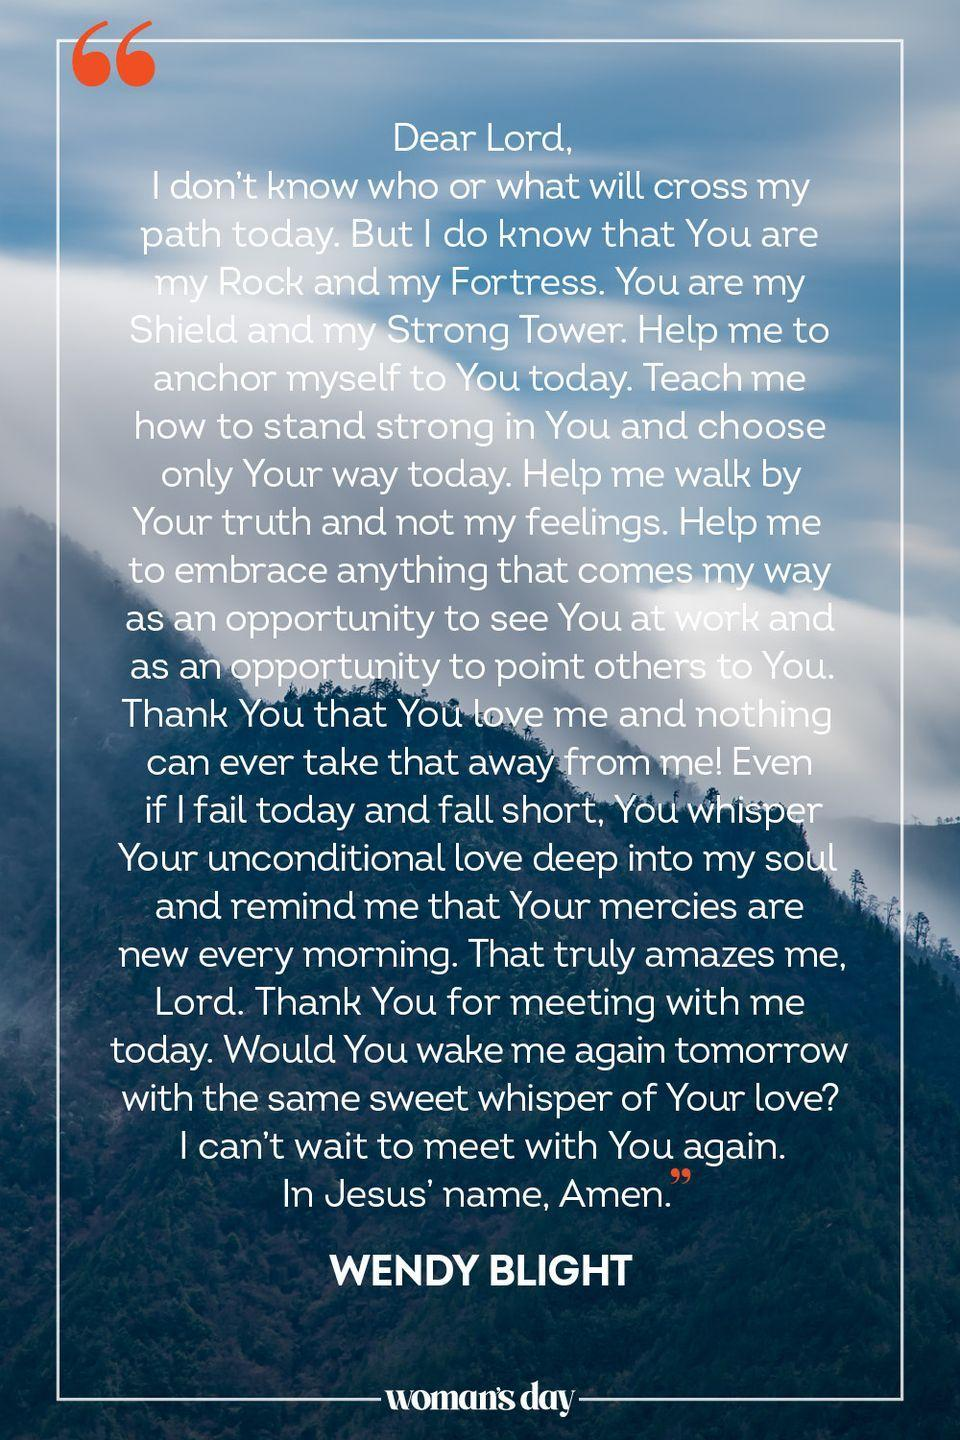 """<p>Dear Lord, </p><p>I don't know who or what will cross my path today. But I do know that You are my Rock and my Fortress. You are my Shield and my Strong Tower. Help me to anchor myself to You today. Teach me how to stand strong in You and choose only Your way today. Help me walk by Your truth and not my feelings. Help me to embrace anything that comes my way as an opportunity to see You at work and as an opportunity to point others to You. Thank You that You love me and nothing can ever take that away from me! Even if I fail today and fall short, You whisper Your unconditional love deep into my soul and remind me that Your mercies are new every morning. That truly amazes me, Lord. Thank You for meeting with me today. Would You wake me again tomorrow with the same sweet whisper of Your love? I can't wait to meet with You again. </p><p>In Jesus' name, Amen.</p><p>— <a href=""""https://www.crosswalk.com/devotionals/encouragement/my-morning-prayer-encouragement-for-today-october-20-2014.html"""" rel=""""nofollow noopener"""" target=""""_blank"""" data-ylk=""""slk:Wendy Blight"""" class=""""link rapid-noclick-resp"""">Wendy Blight</a></p>"""